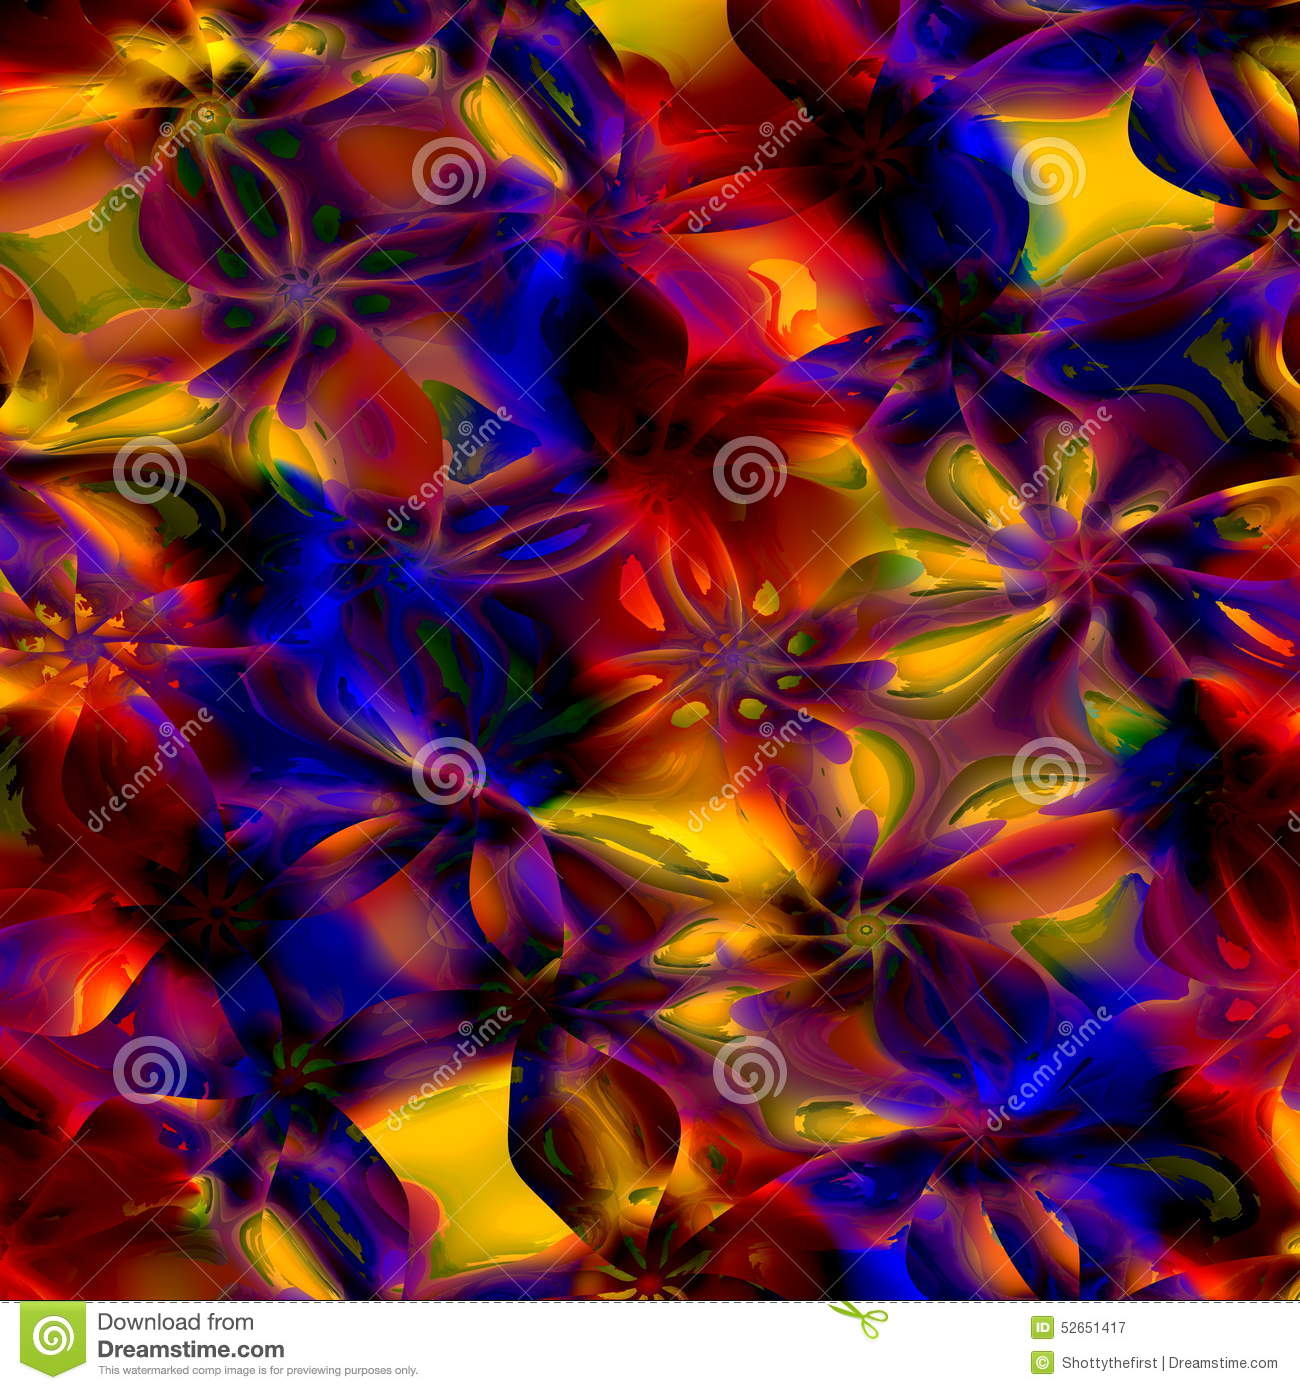 Colorful Abstract Art Background Computer Generated Floral Fractal Pattern Digital Design Illustration Creative Colored Image 52651417